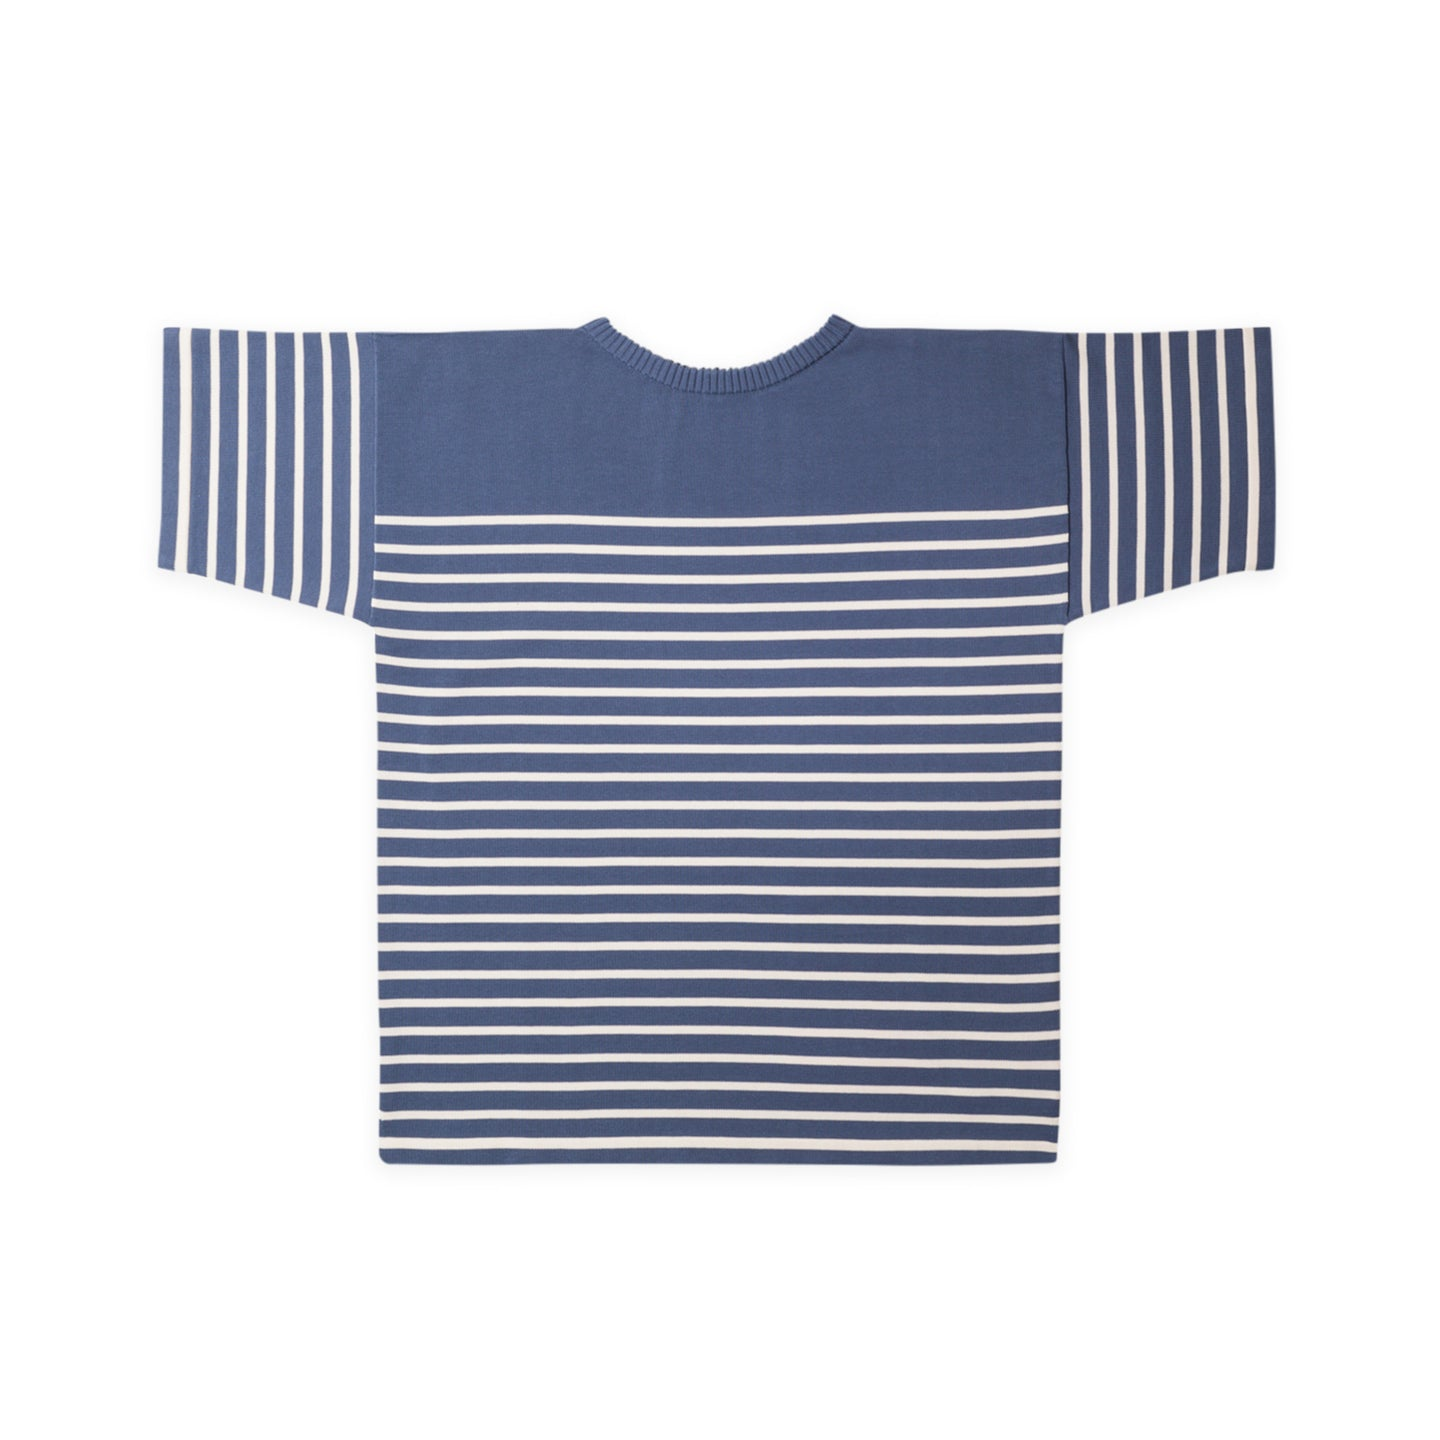 ANDERSEN-ANDERSEN T Shirt - Petroleum ground Off White stripe